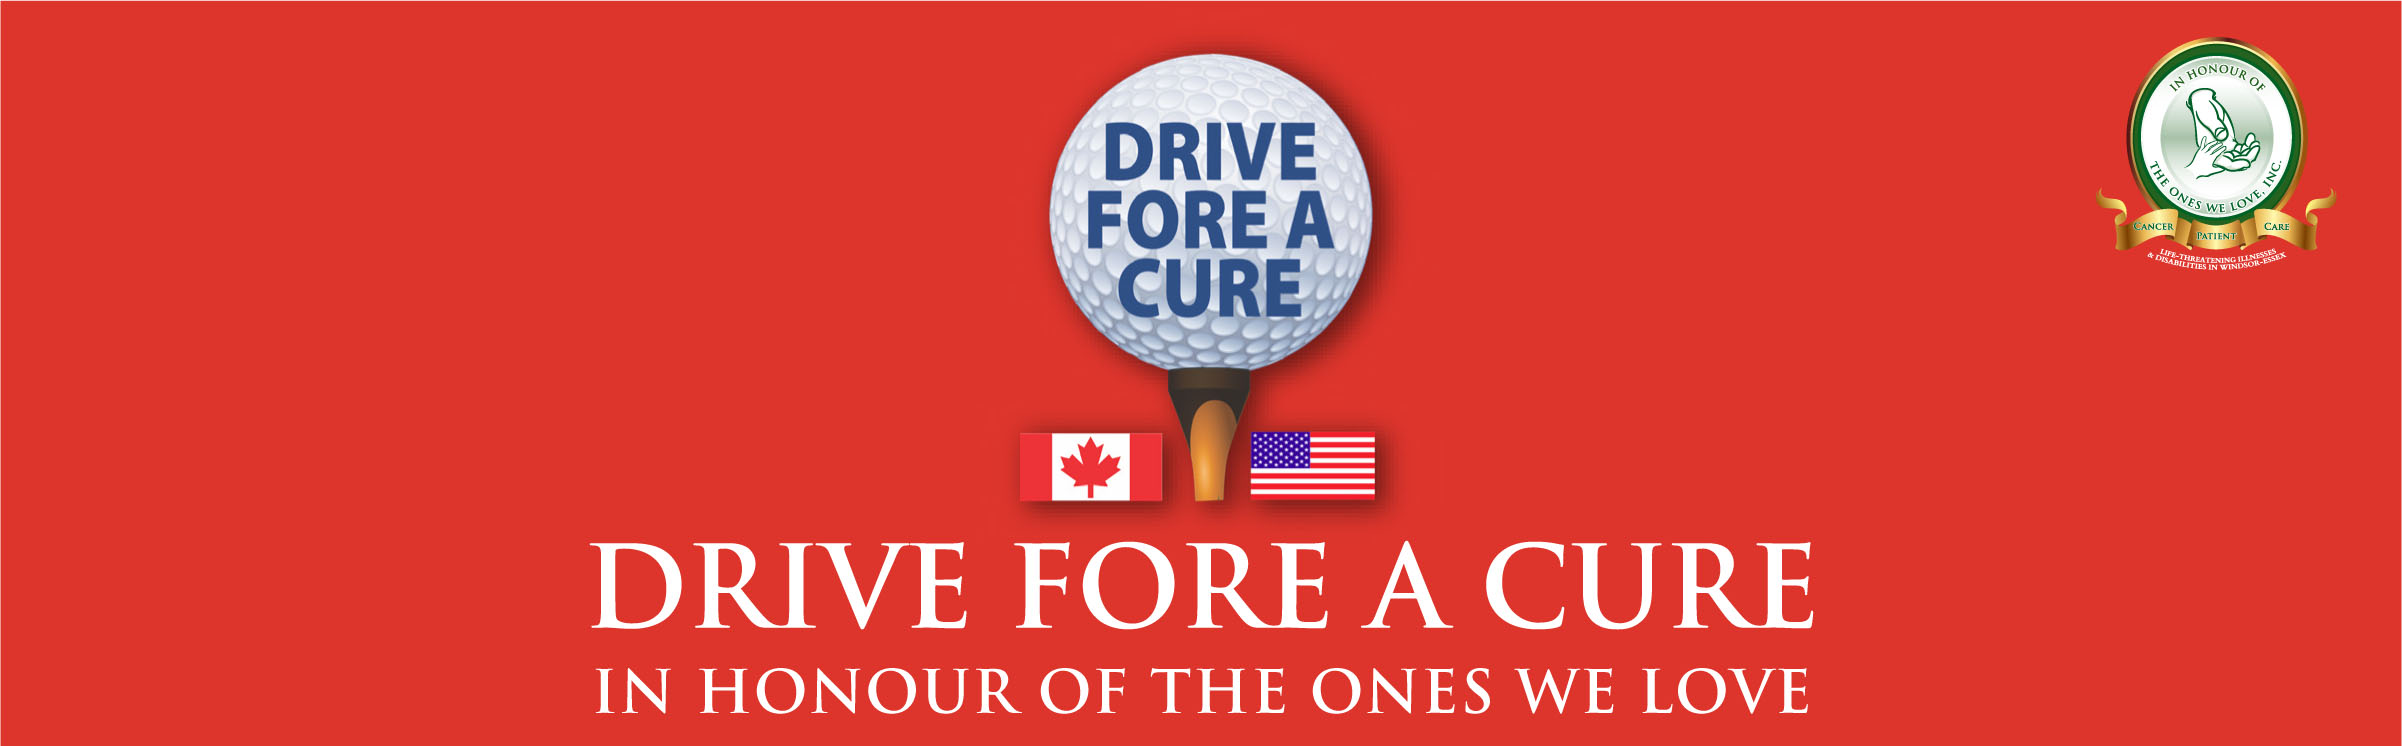 13th Annual Drive Fore a Cure Golf Tournament - In Honour of the Ones We Love